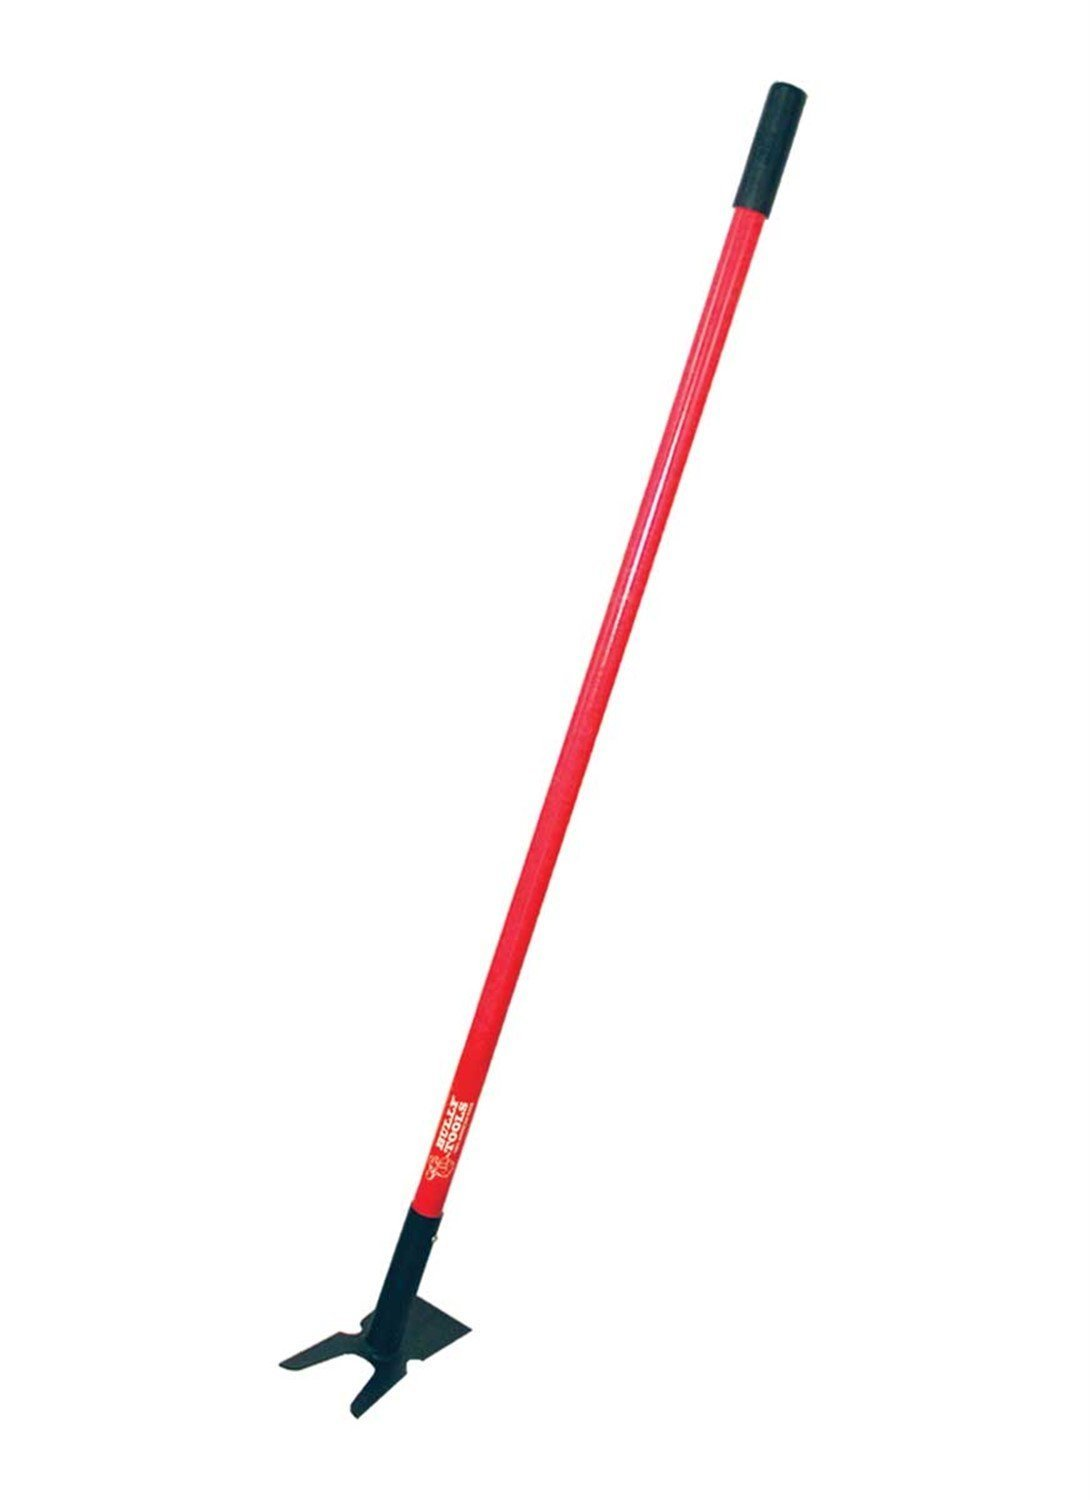 Bully Tools 92357 12-Gauge 2-Prong Weeding Hoe with Fiberglass Handle (Pack of 3) by Bully Tools (Image #2)